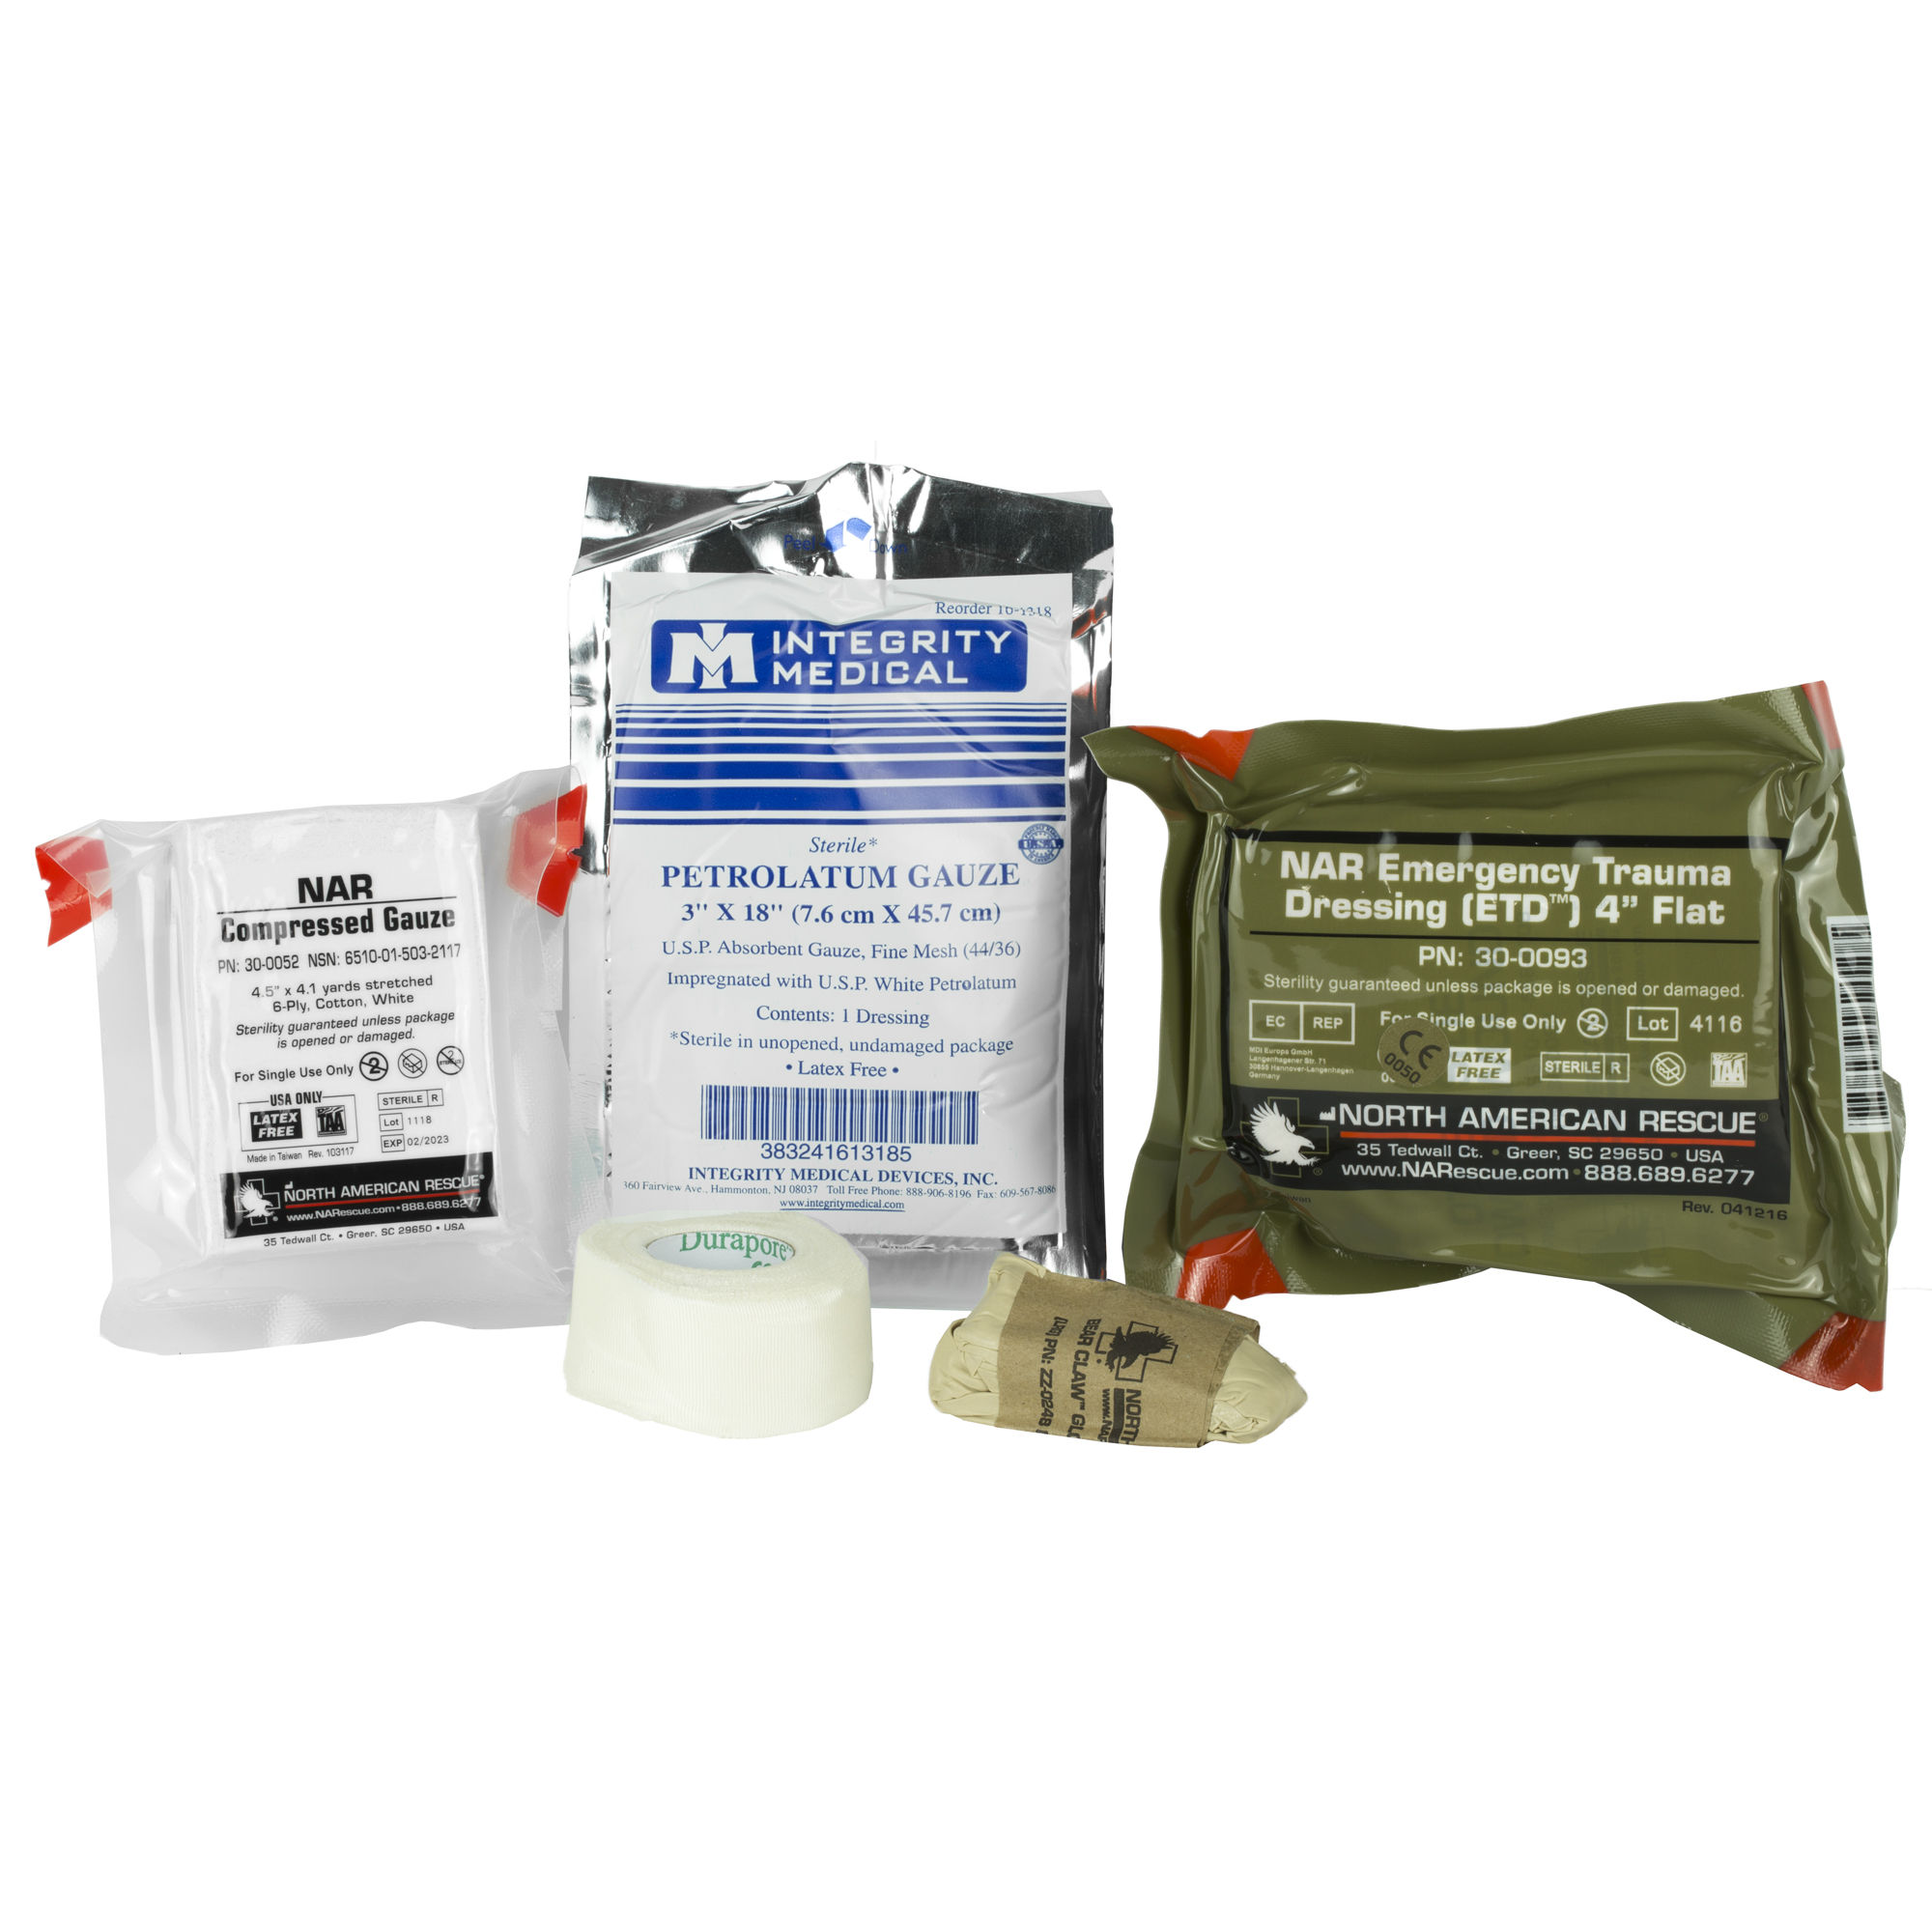 "North American Rescue's compact"" vacuum-sealed Individual Aid Kit is designed to treat bleeding from penetrating and other traumatic injuries. The items in this kit are simple to use by non-medically trained caregivers. The purpose of this kit is to control bleeding and cover penetrating injuries until medically trained responders arrive on scene."